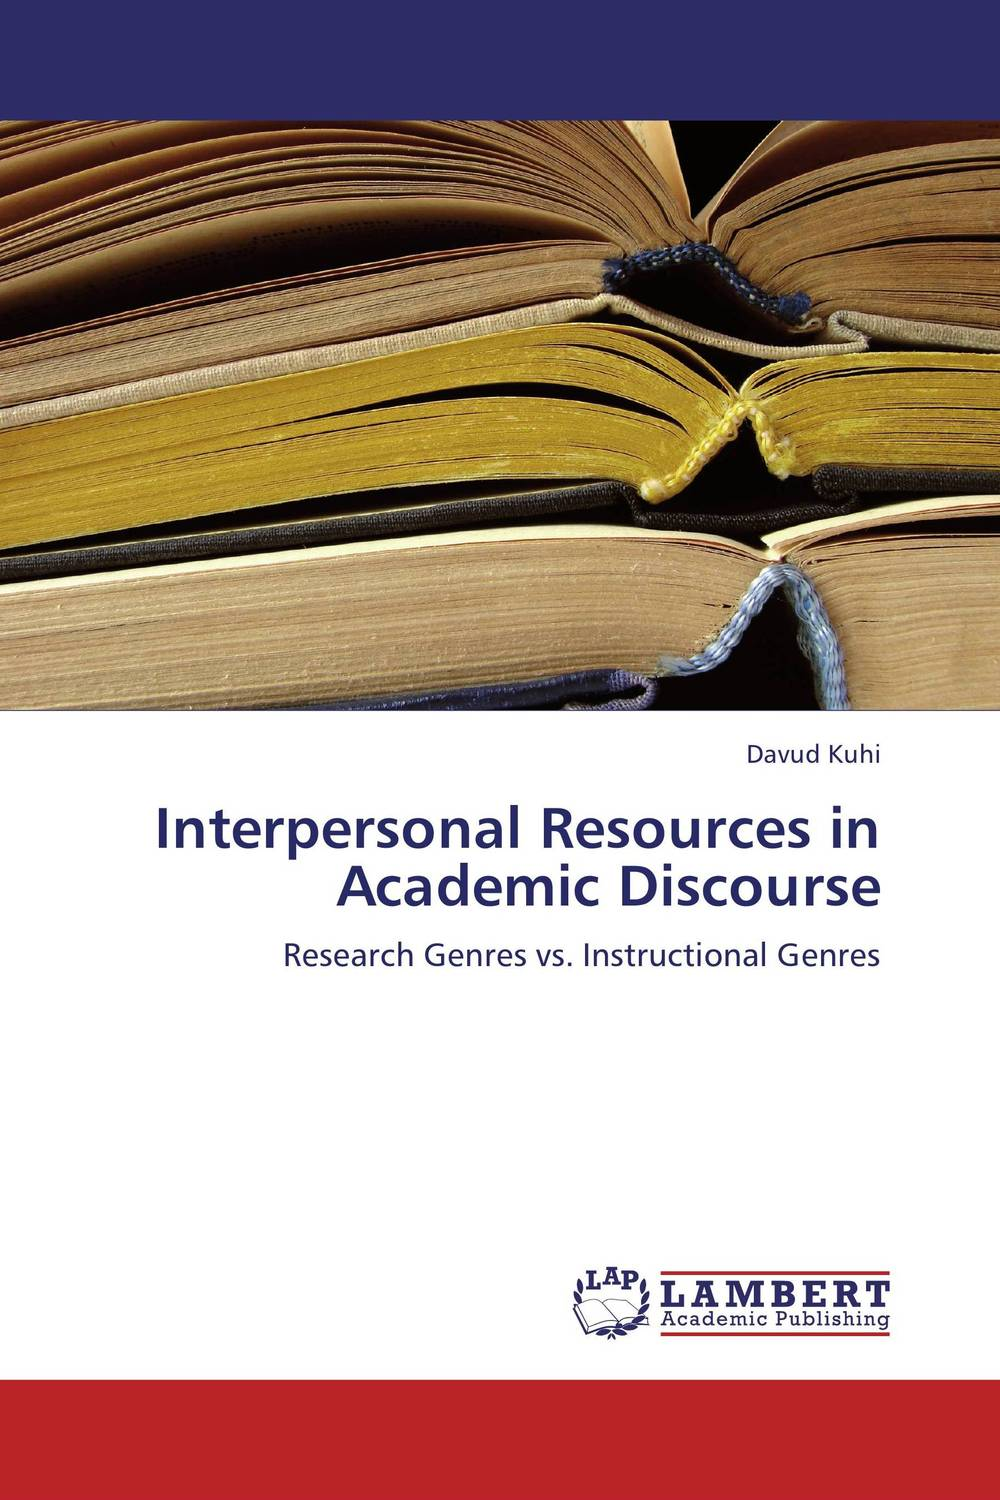 Interpersonal Resources in Academic Discourse communities of discourse – ideology